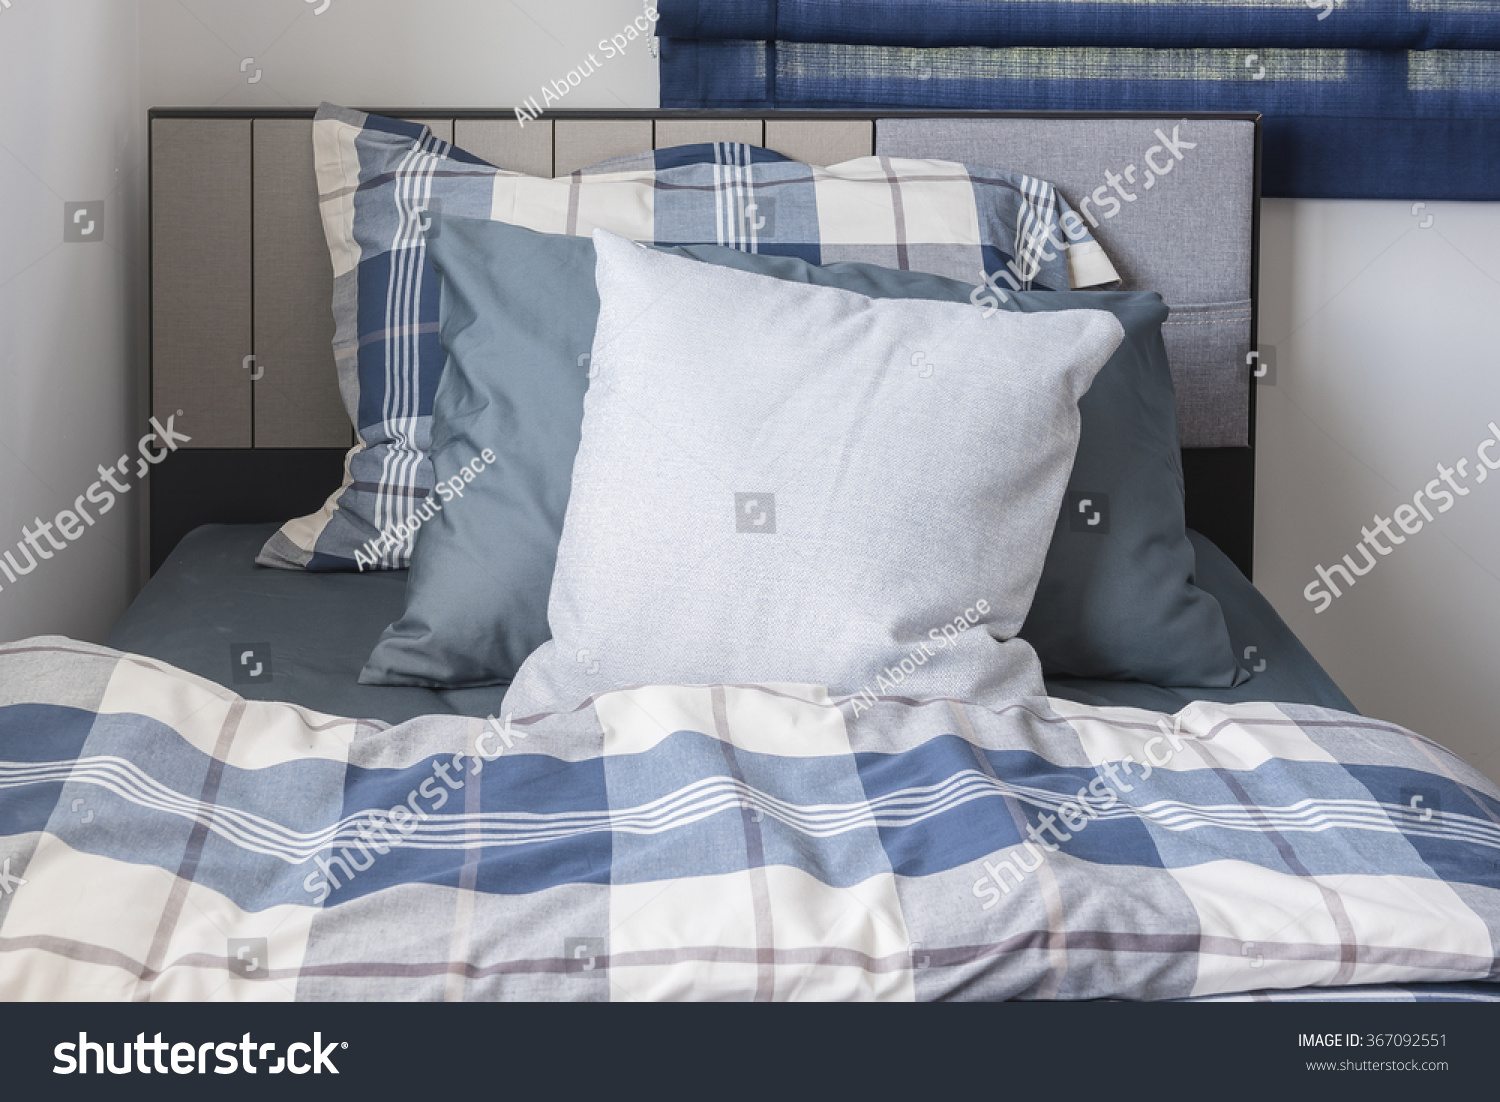 Modern Family Pillows On Bed : Pillows On Modern Bed Blue Color Stock Photo 367092551 - Shutterstock